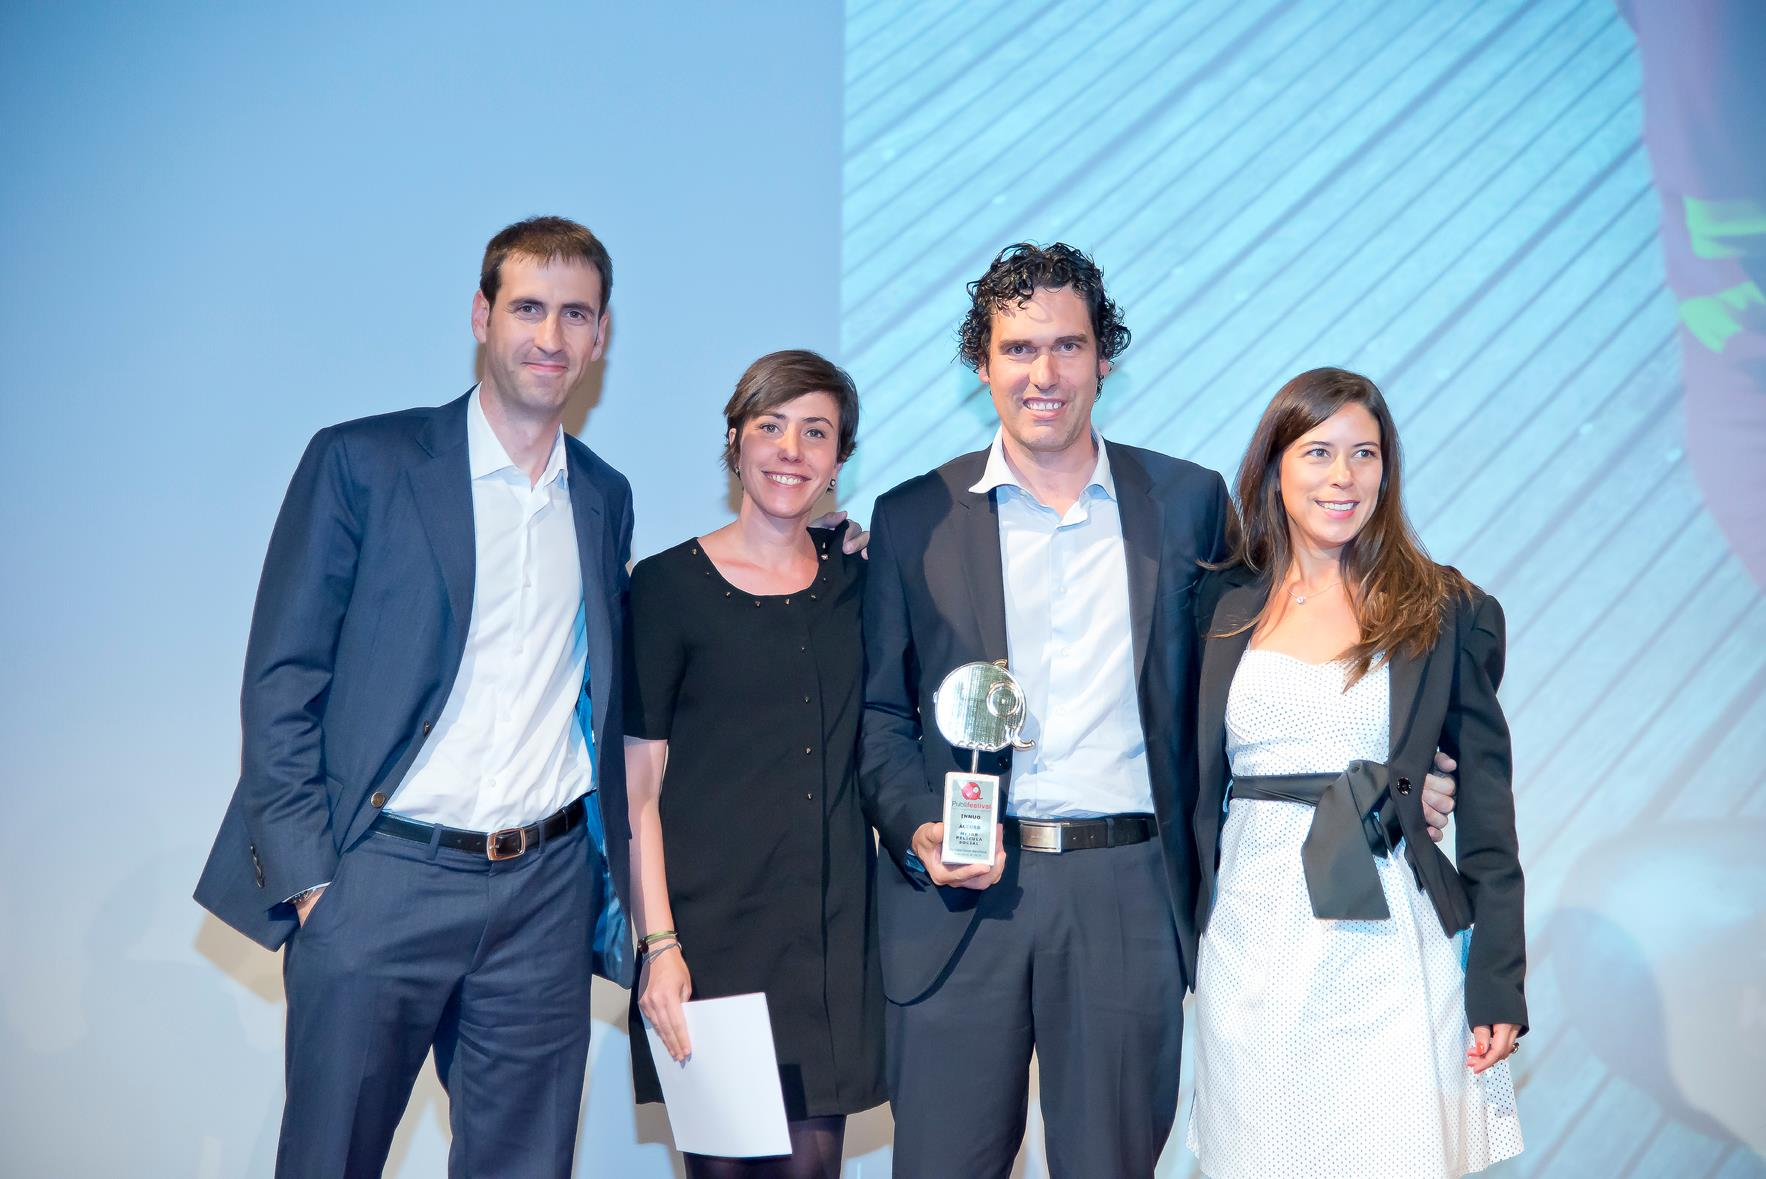 Innuo receives two CSR awards at Publifestival